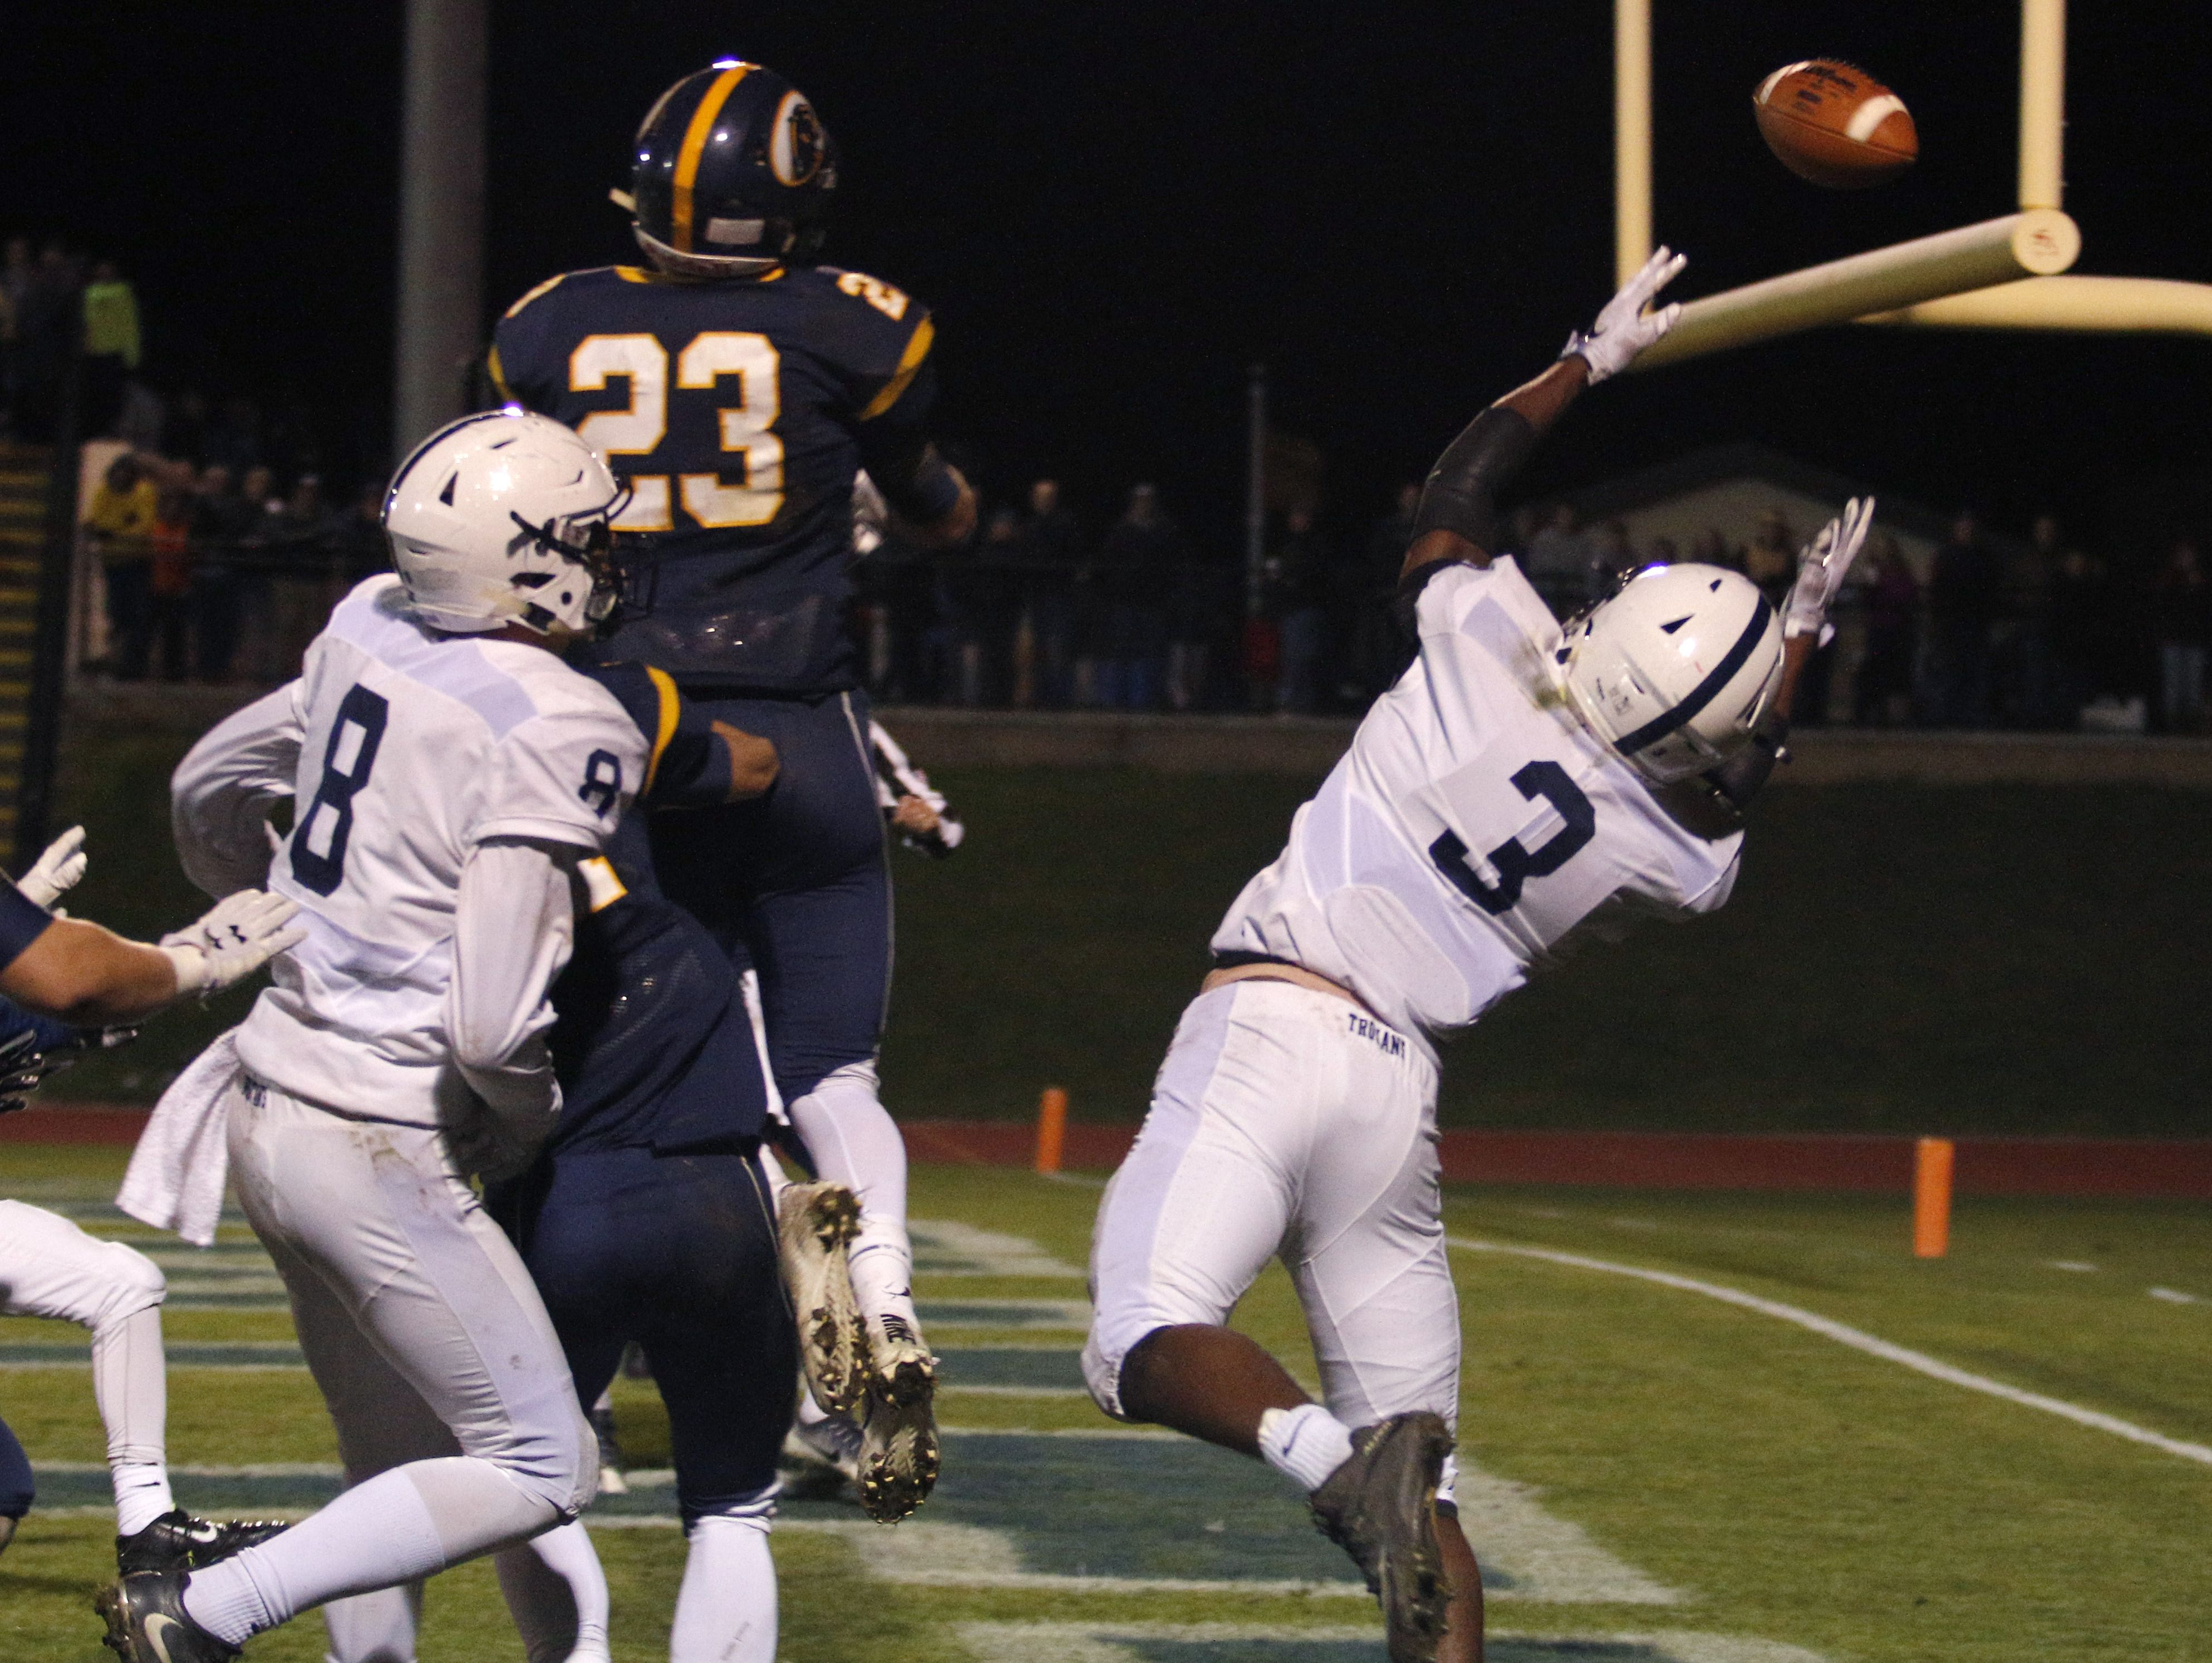 DeWitt's JD Ross (23) bats away a pass in the end zone at the close the first half against East Lansing's Darian Holbrook (3) and Blake Underwood (8) Friday, Oct. 28, 2016, in DeWitt, Mich.